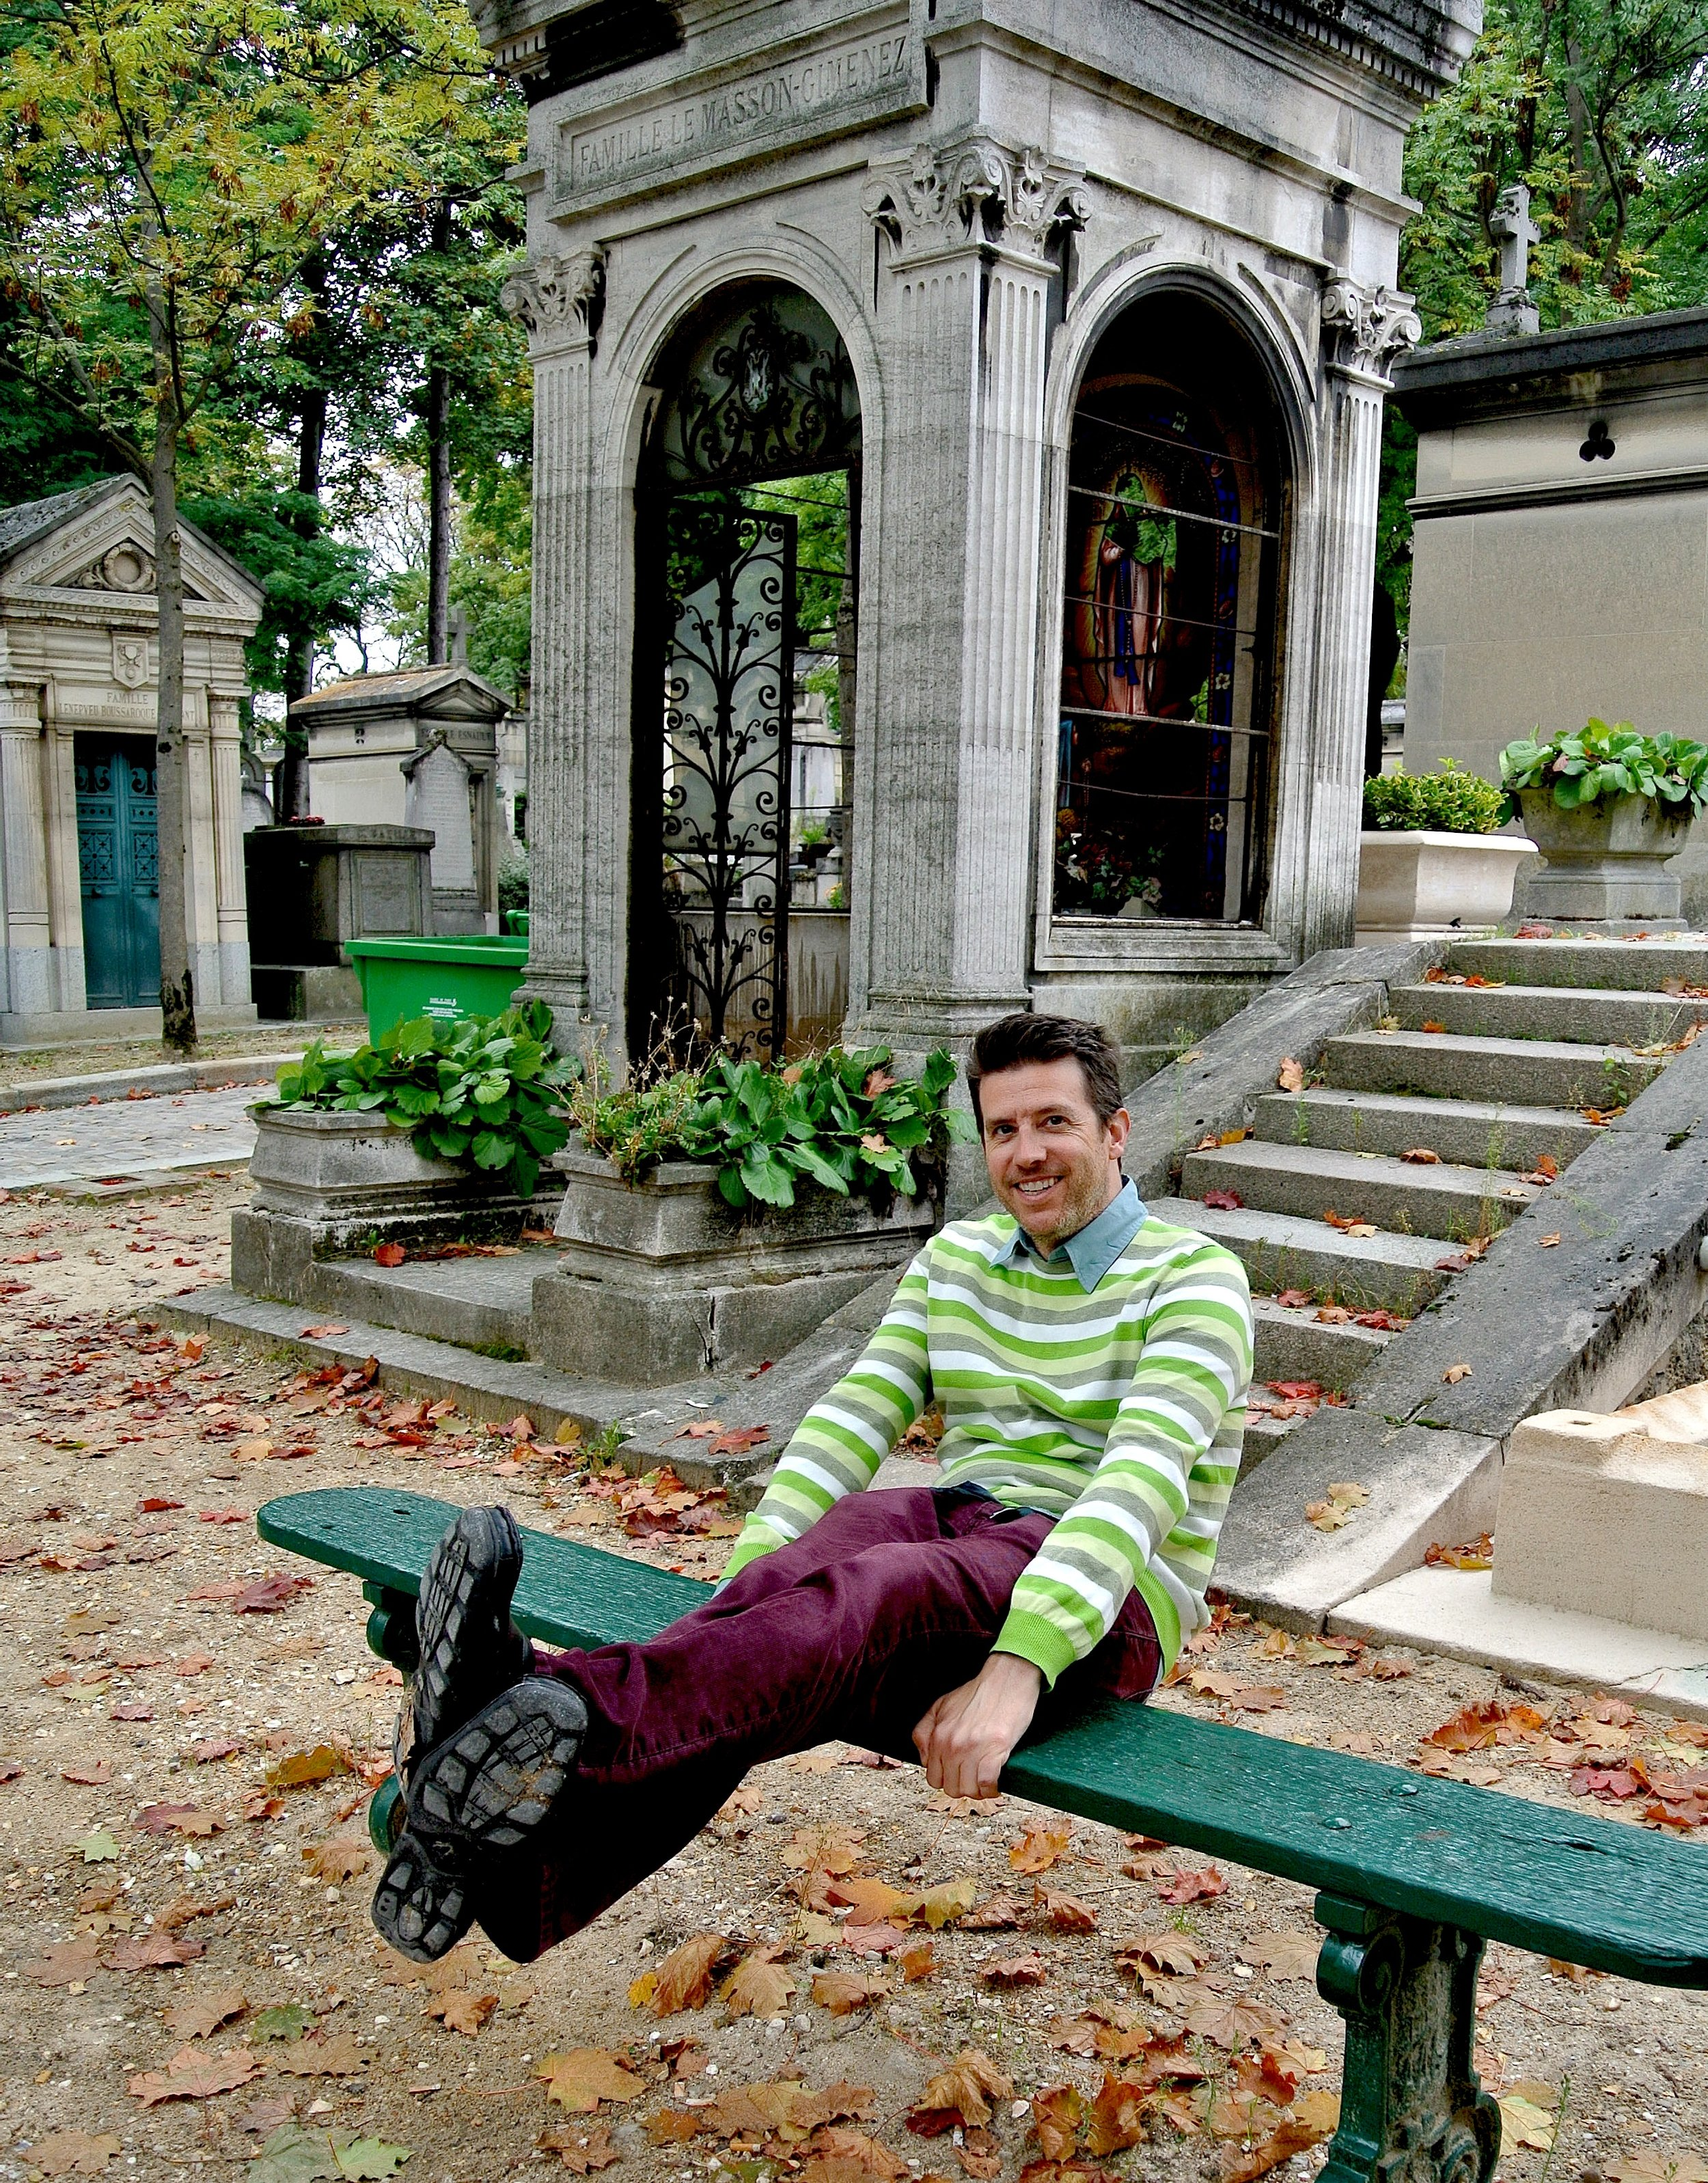 A day spent wandering a cemetery as cool as Père Lachaise sure makes Wally happy